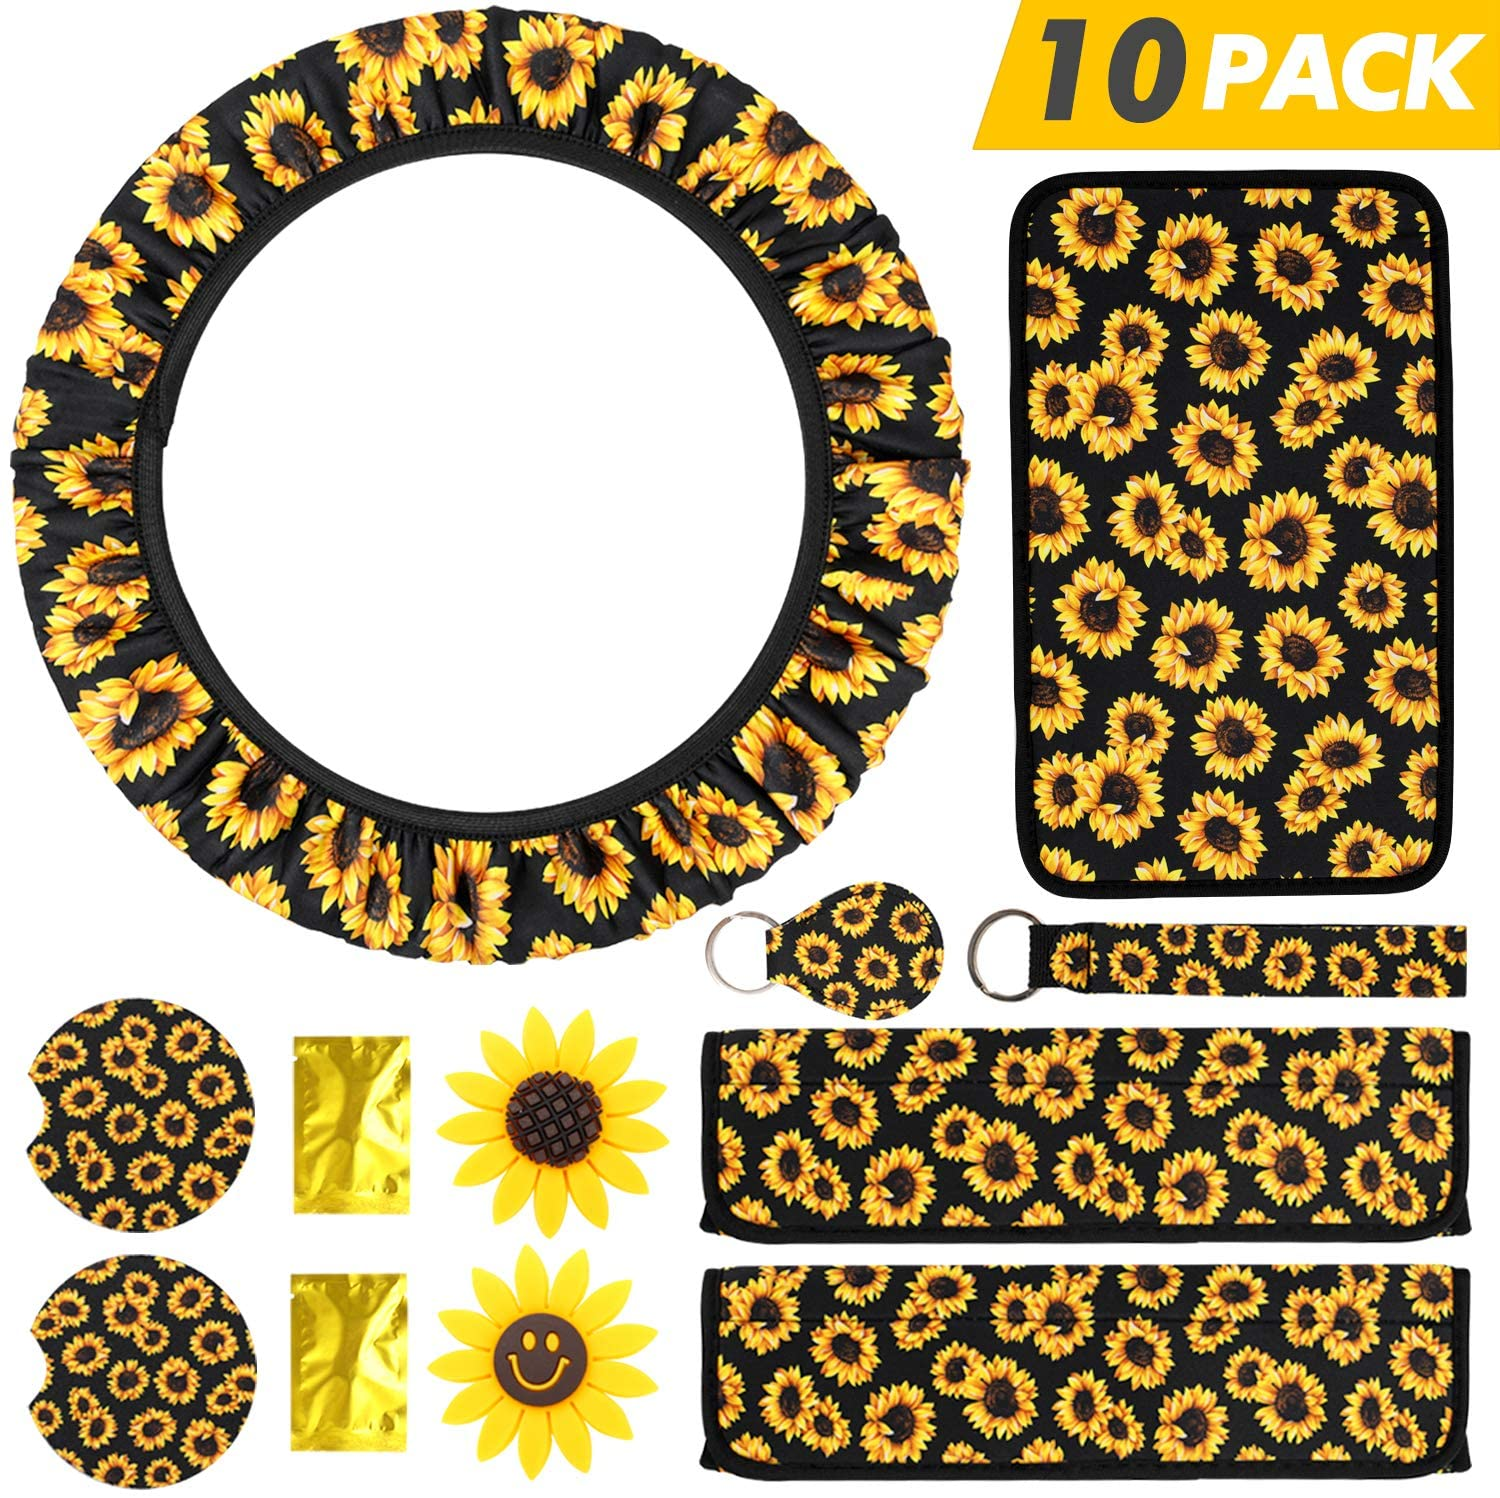 SEVENS SunflowerCarAccessories for Women with Universal Console Cover, Adjustable SteeringWheelCover, Sunflowers Key Ring, Seat Belt Shoulder Pads, Car Vent Decorations& Cup Coaster, 10 Pieces